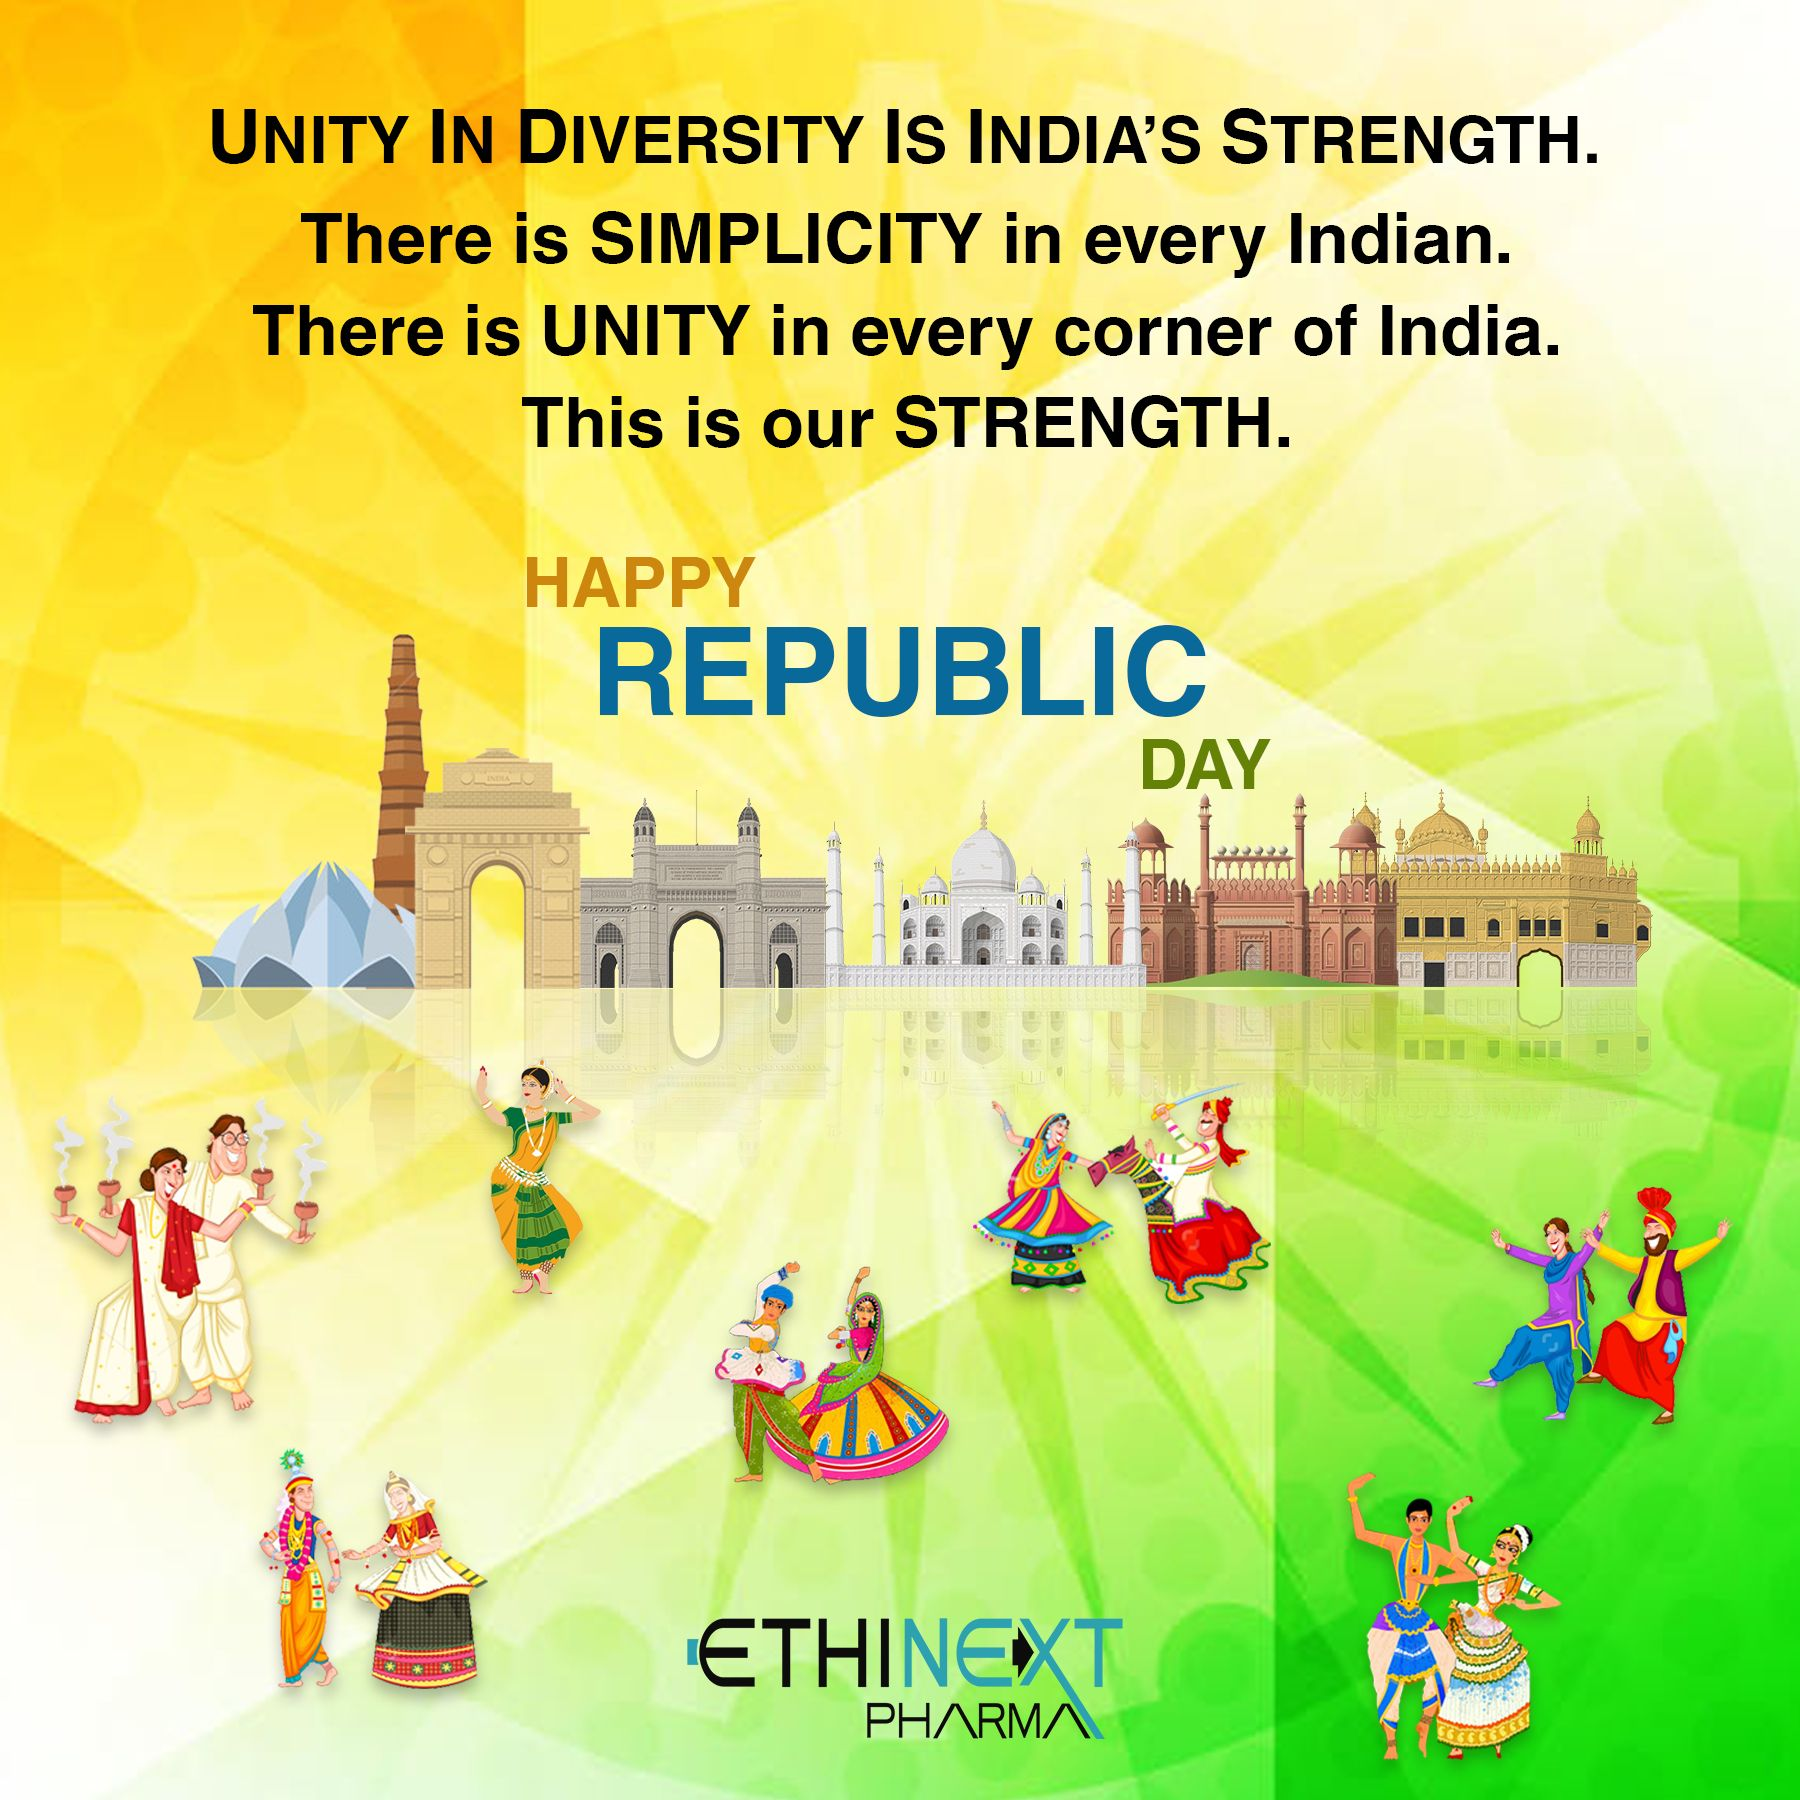 Unity in diversity is India's strength. There is